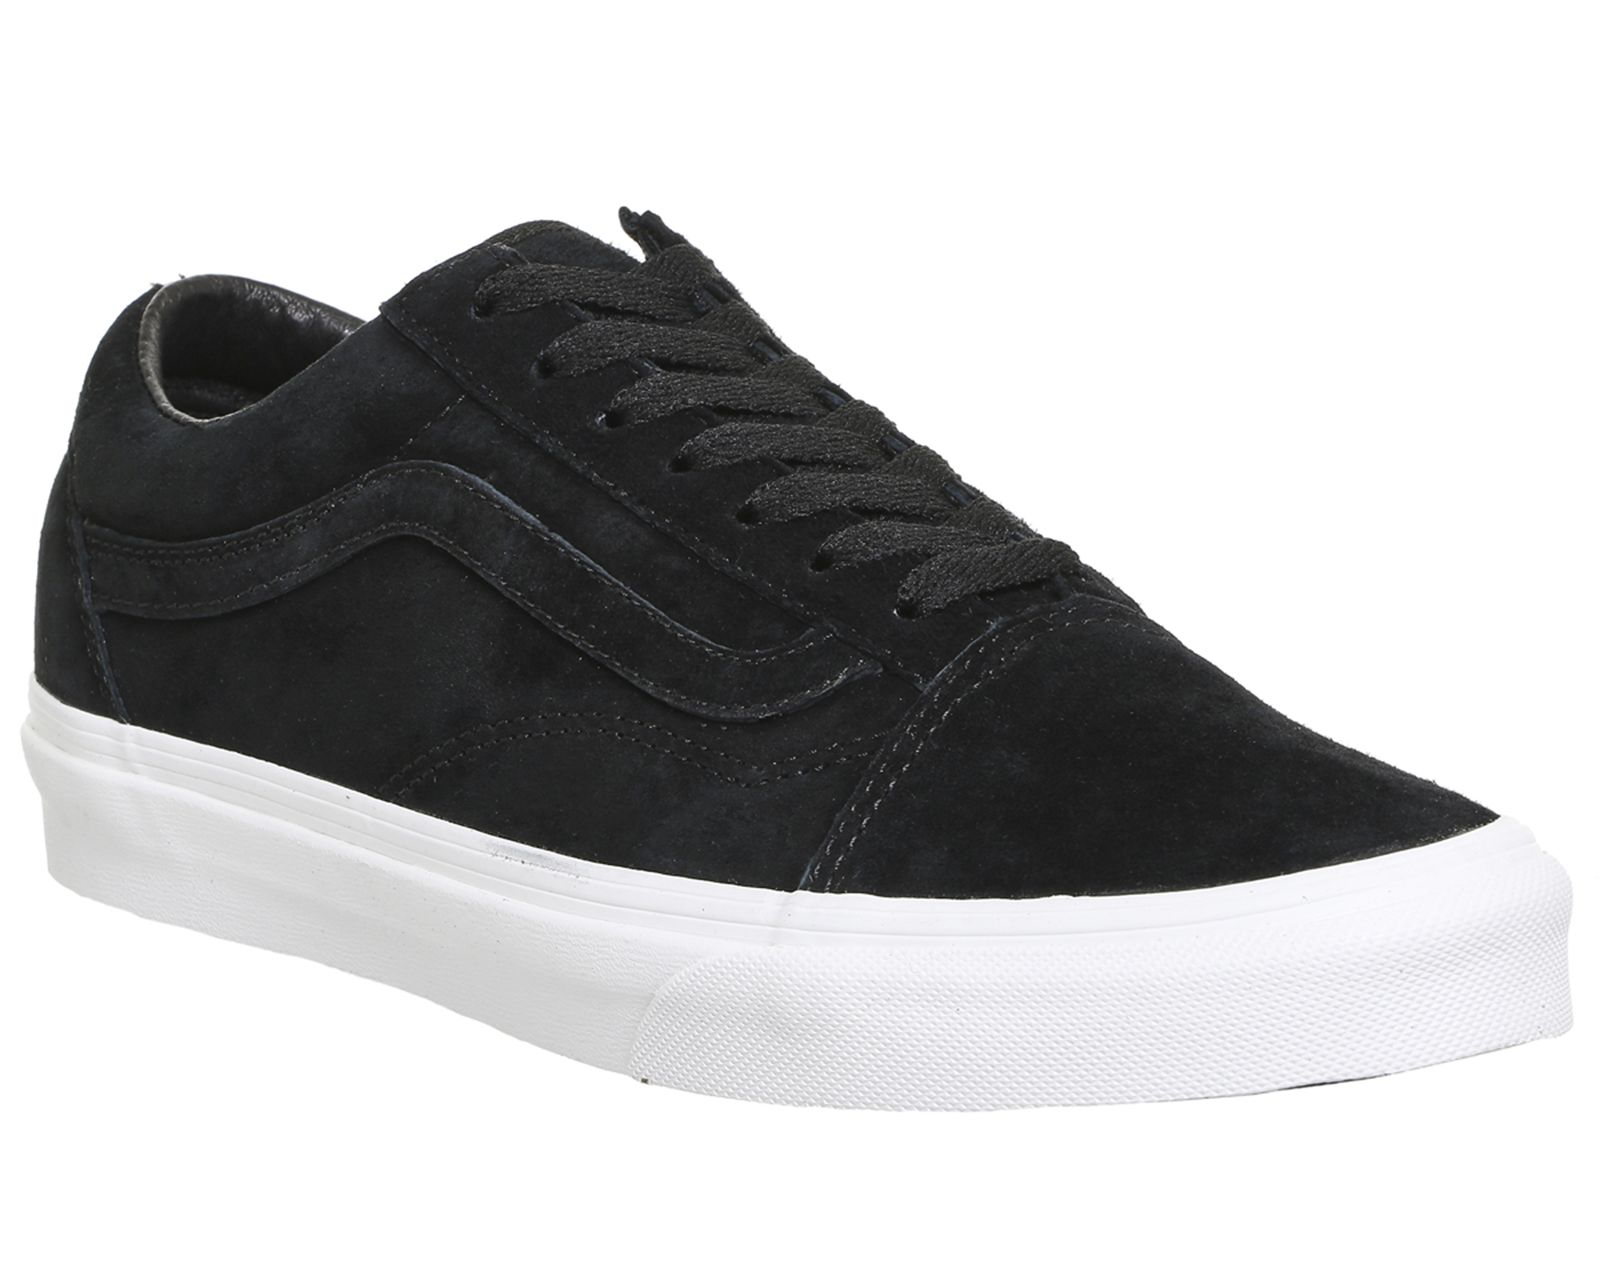 Vans Old Skool Black Suede True White - Unisex Sports